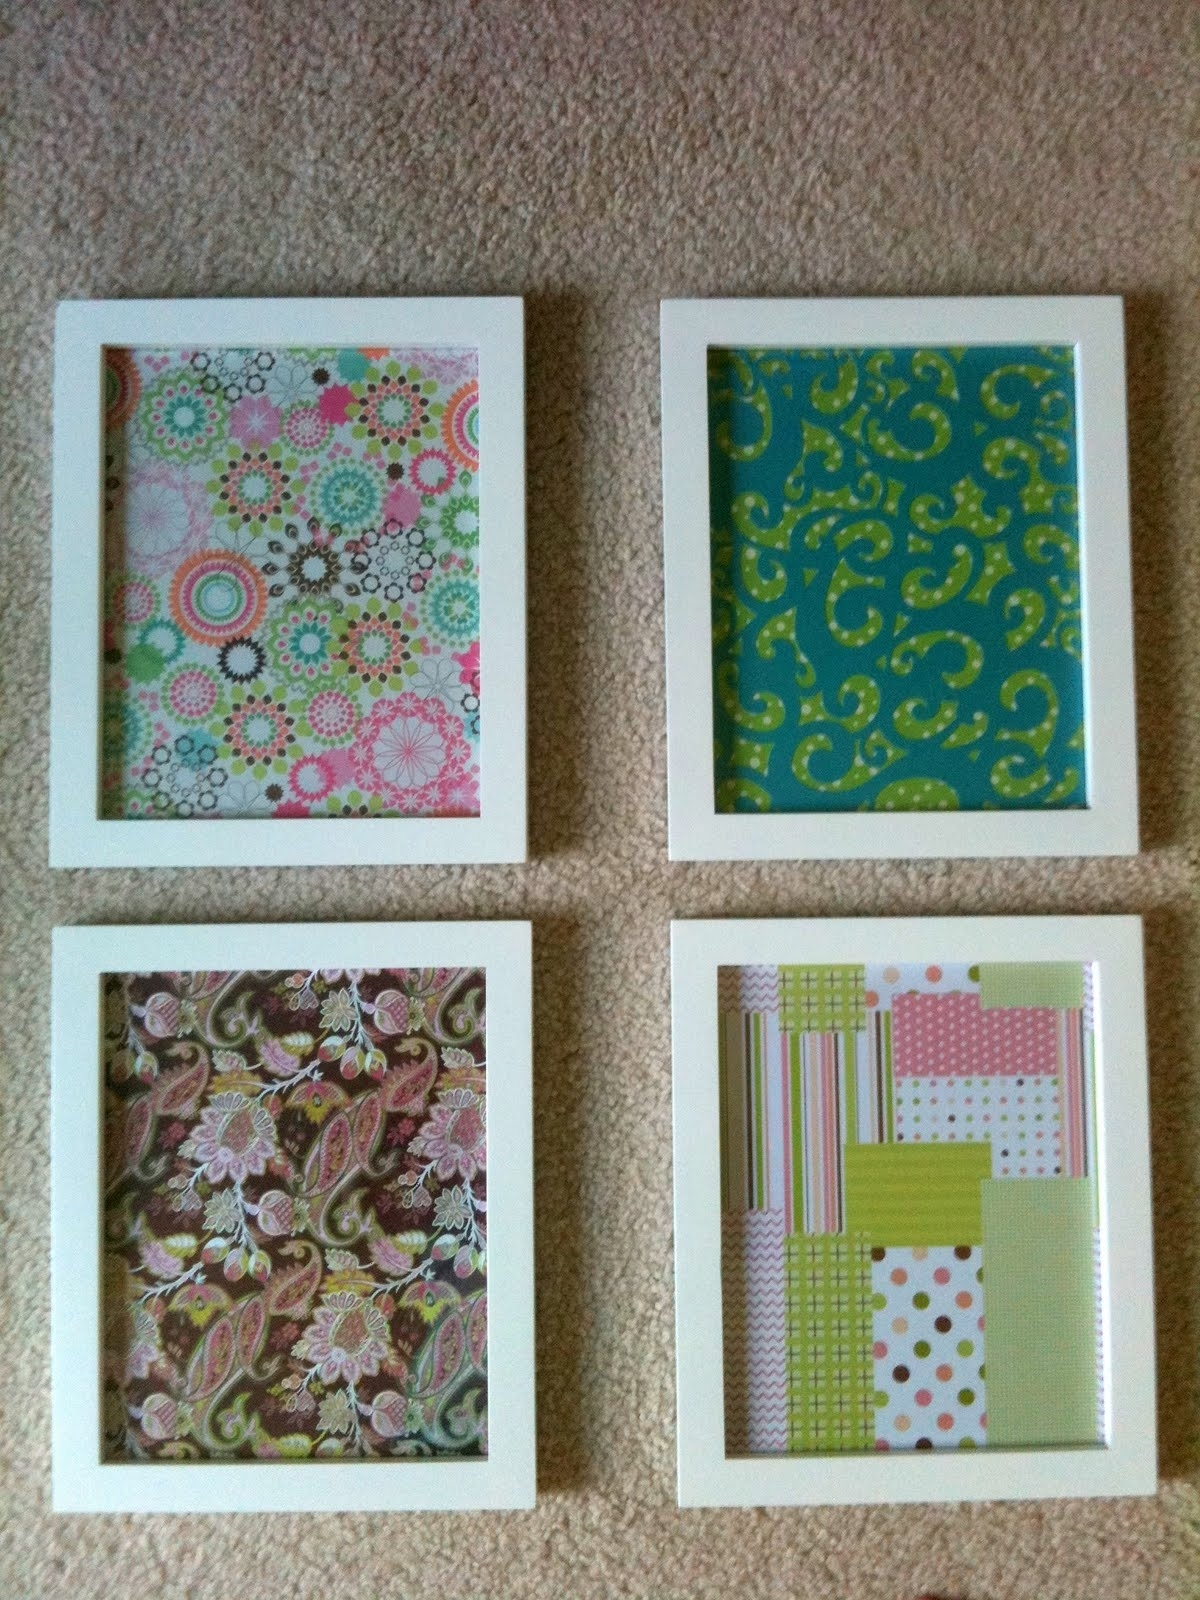 Diy Nursery Wall Decor Ideas With Beautiful Pa #84 – Green Way Parc Within Most Current Fabric Covered Frames Wall Art (View 6 of 15)